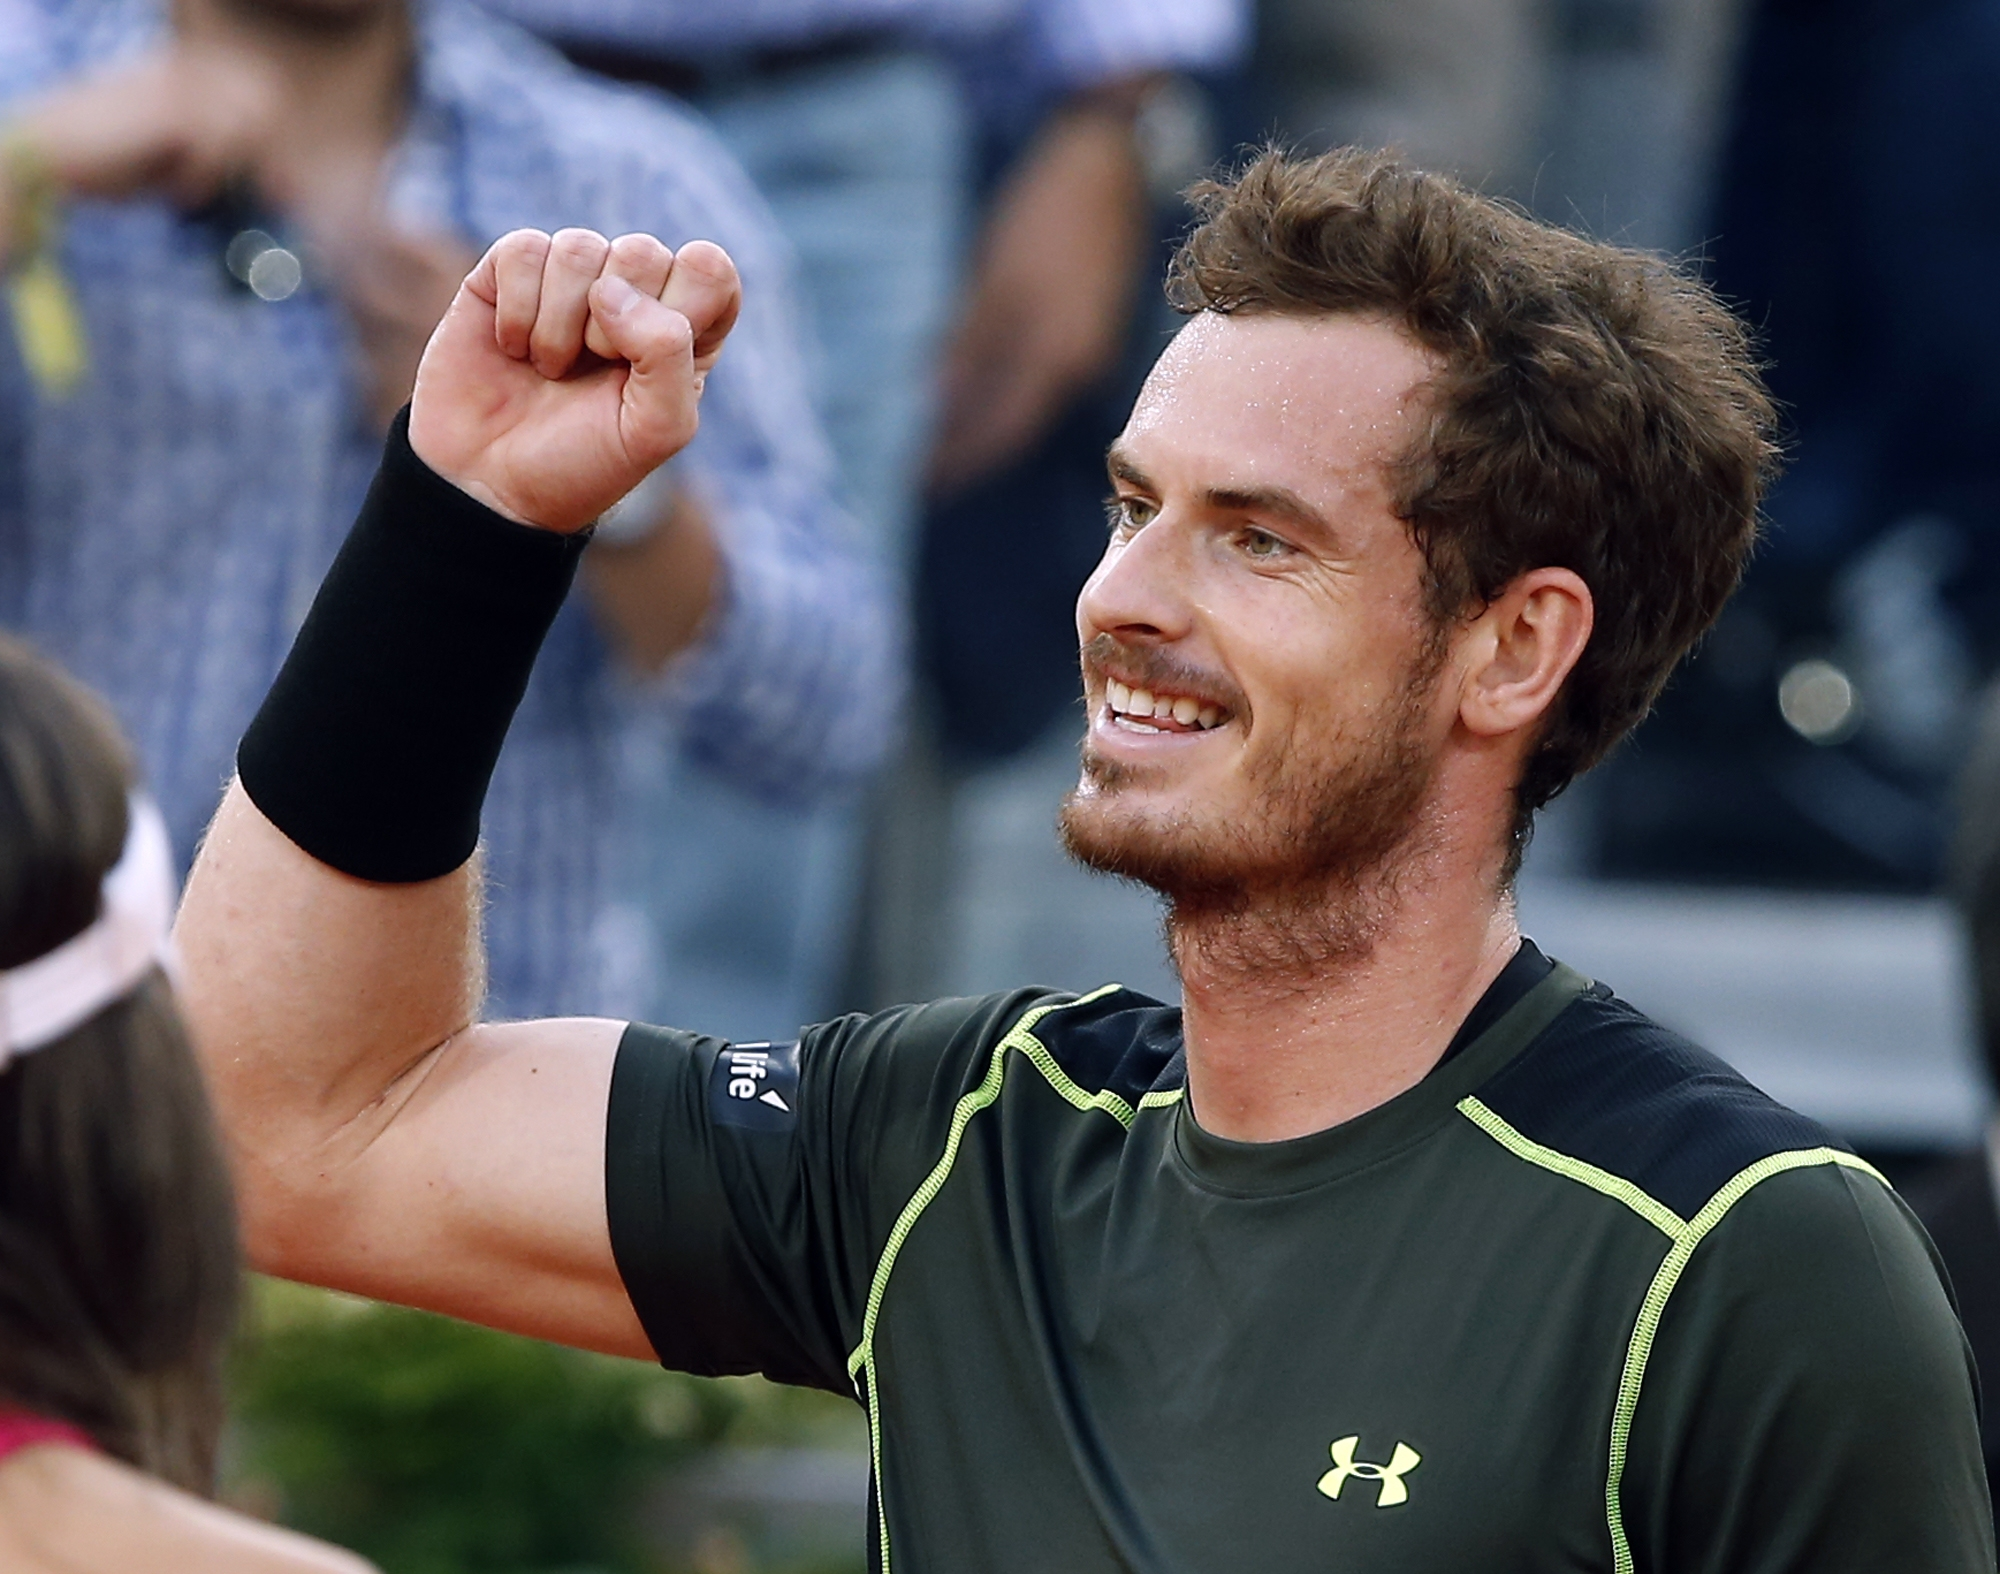 Andy Murray of Britain celebrates after defeating Rafael Nadal of Spain 6-3, 6-2, in their men's singles final match at the Madrid Open Tennis tournament in Madrid, Spain, Sunday, May 10, 2015. (AP Photo/Paul White)